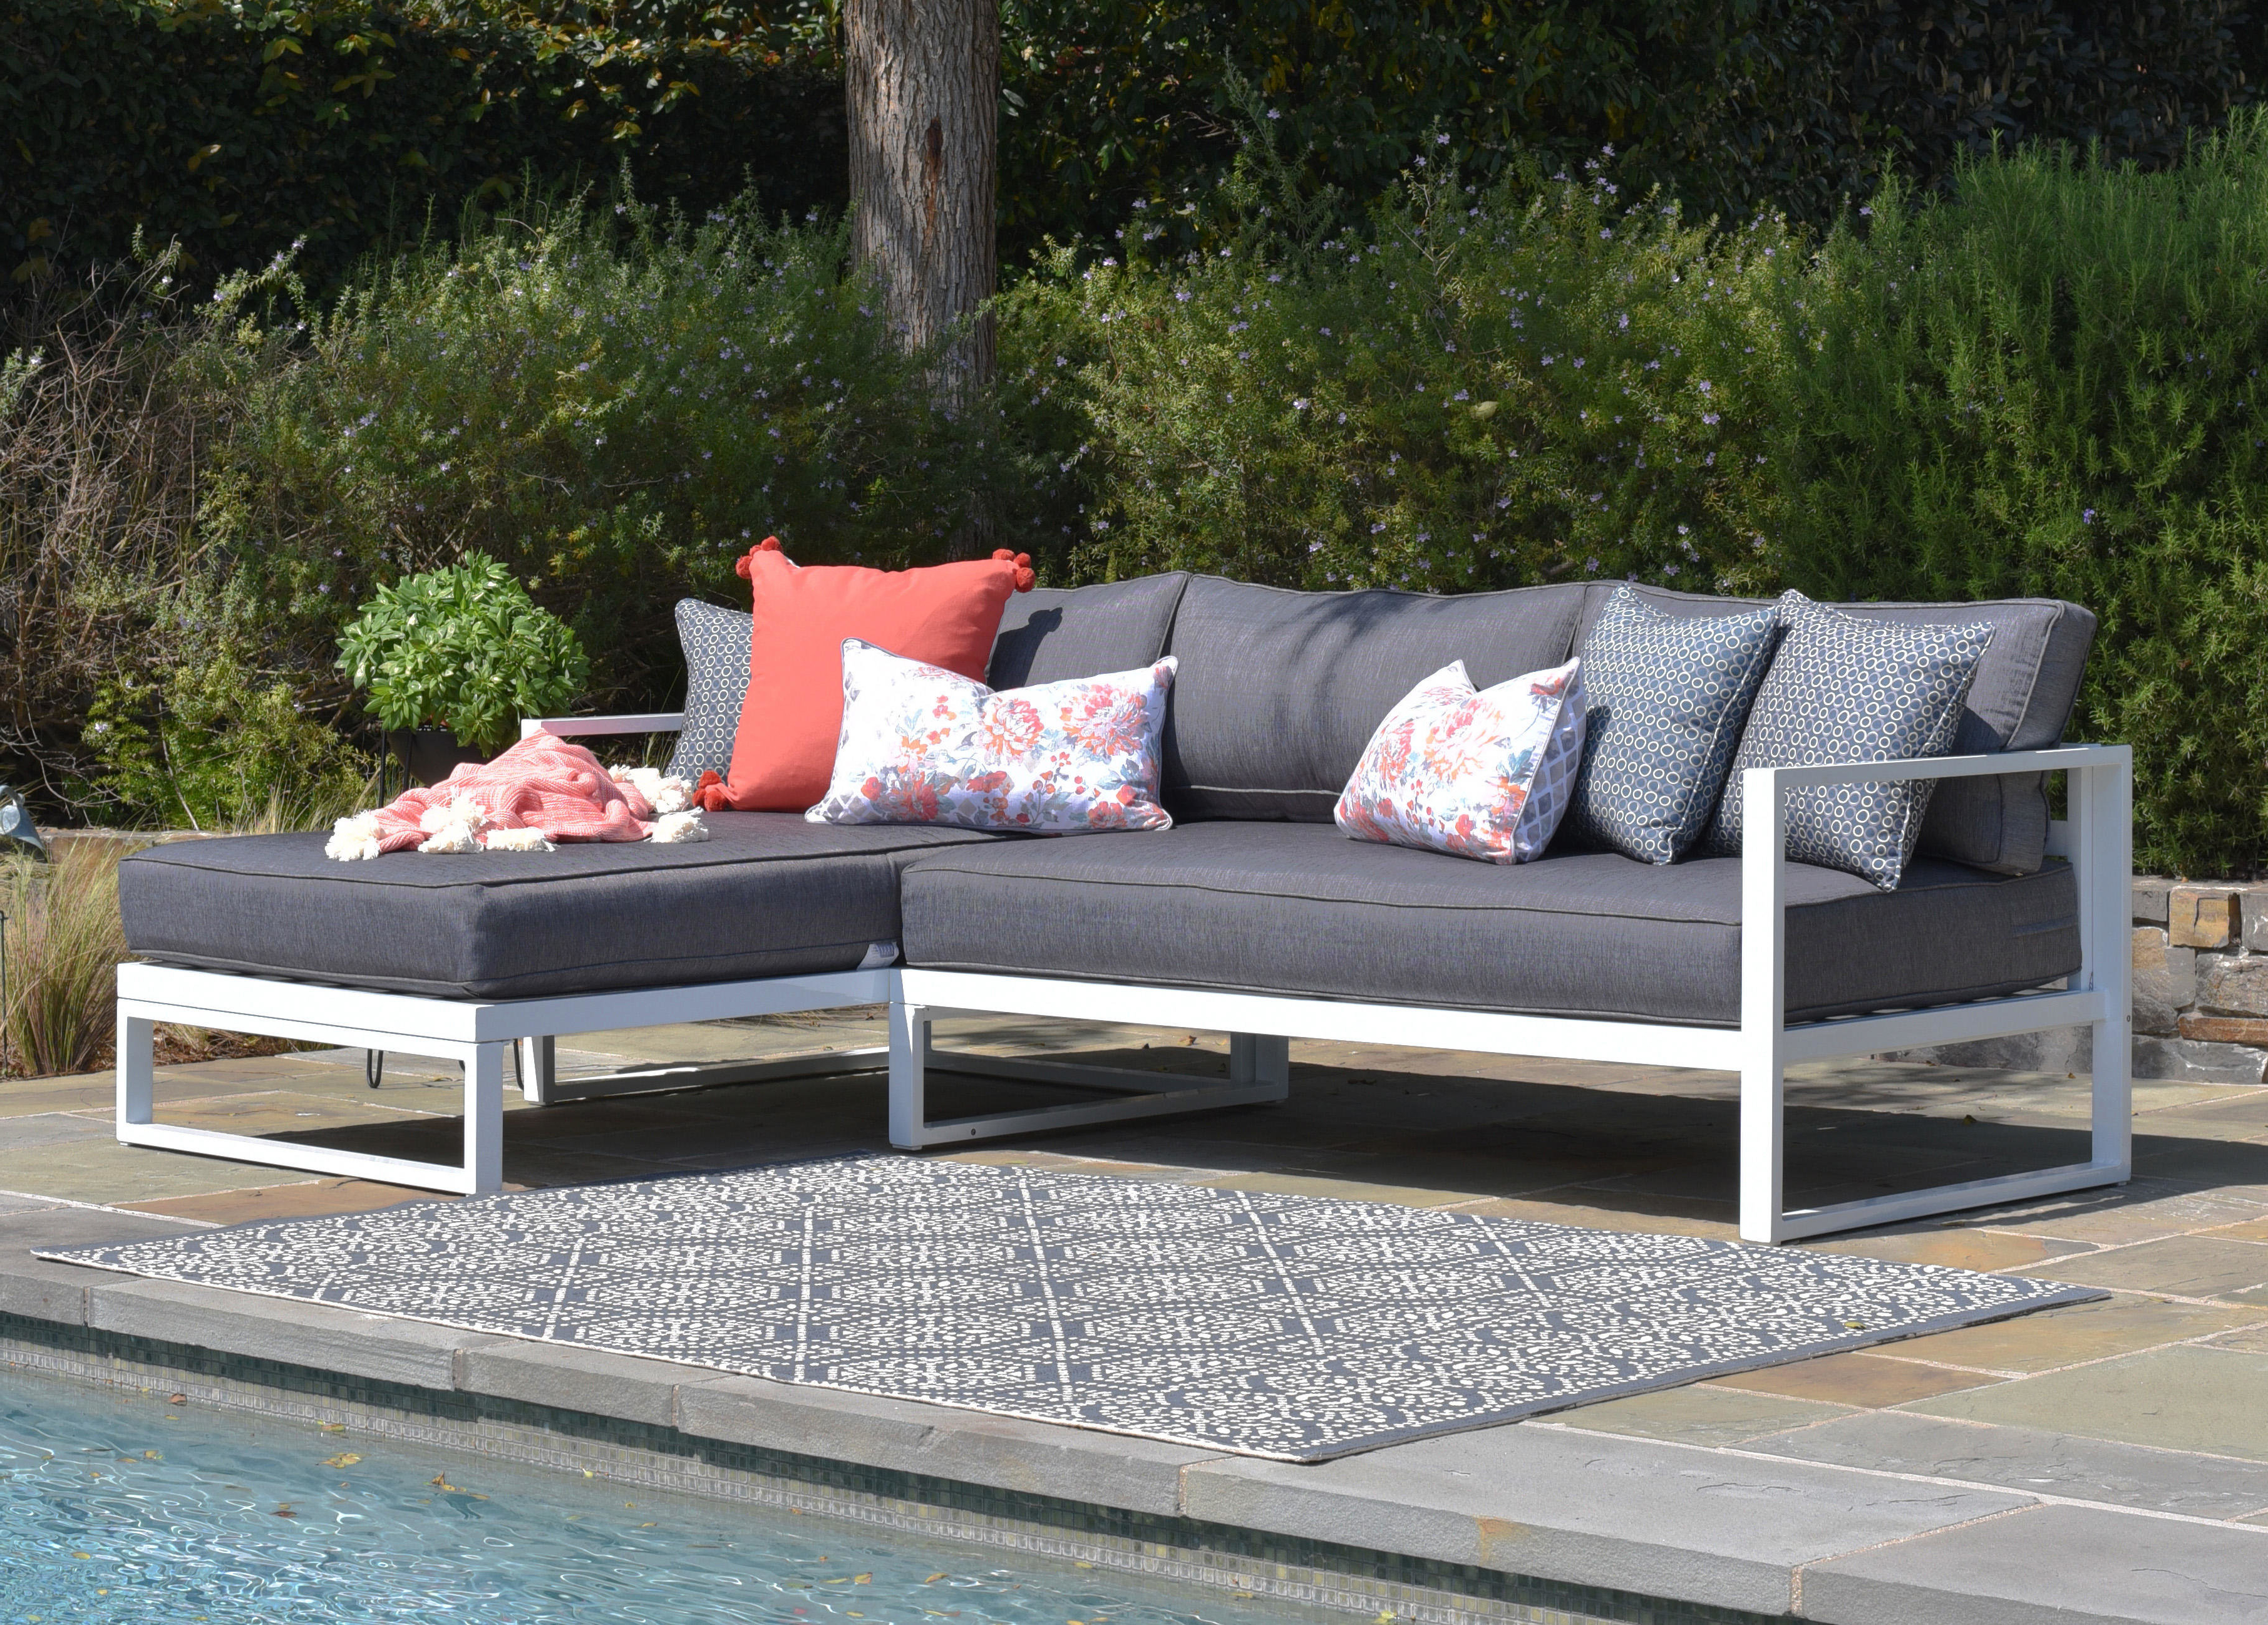 Tess Corner Living Patio Sectionals With Cushions Pertaining To Most Popular Outdoor Sectional Small Space (View 16 of 20)